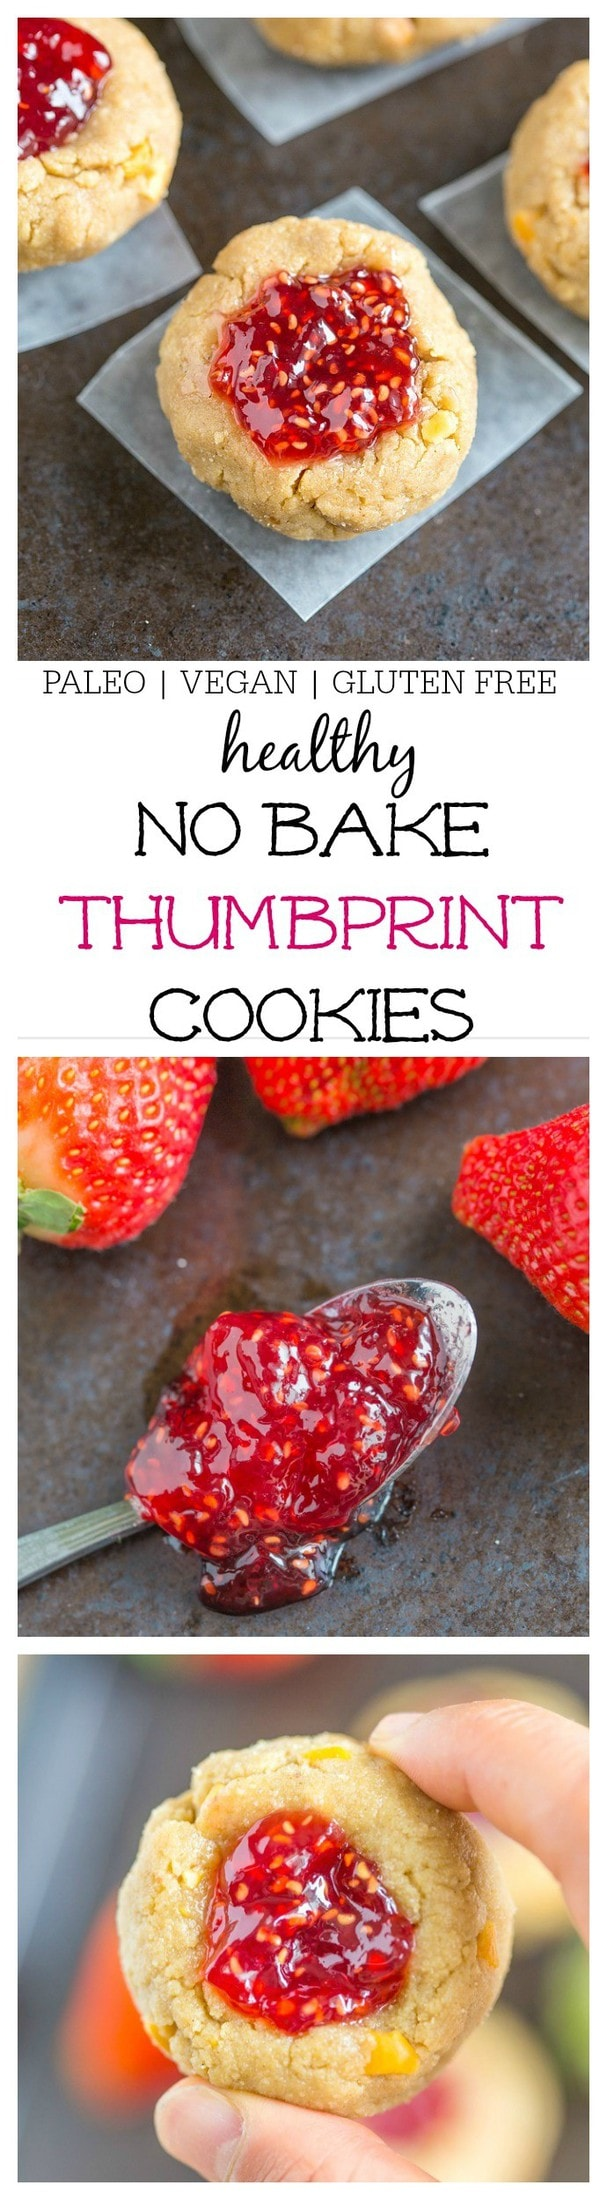 Healthy No Bake Thumbprint Cookies- Ready in 10 minutes + Vegan, GF + Paleo- @thebigmansworld - thebigmansworld.com